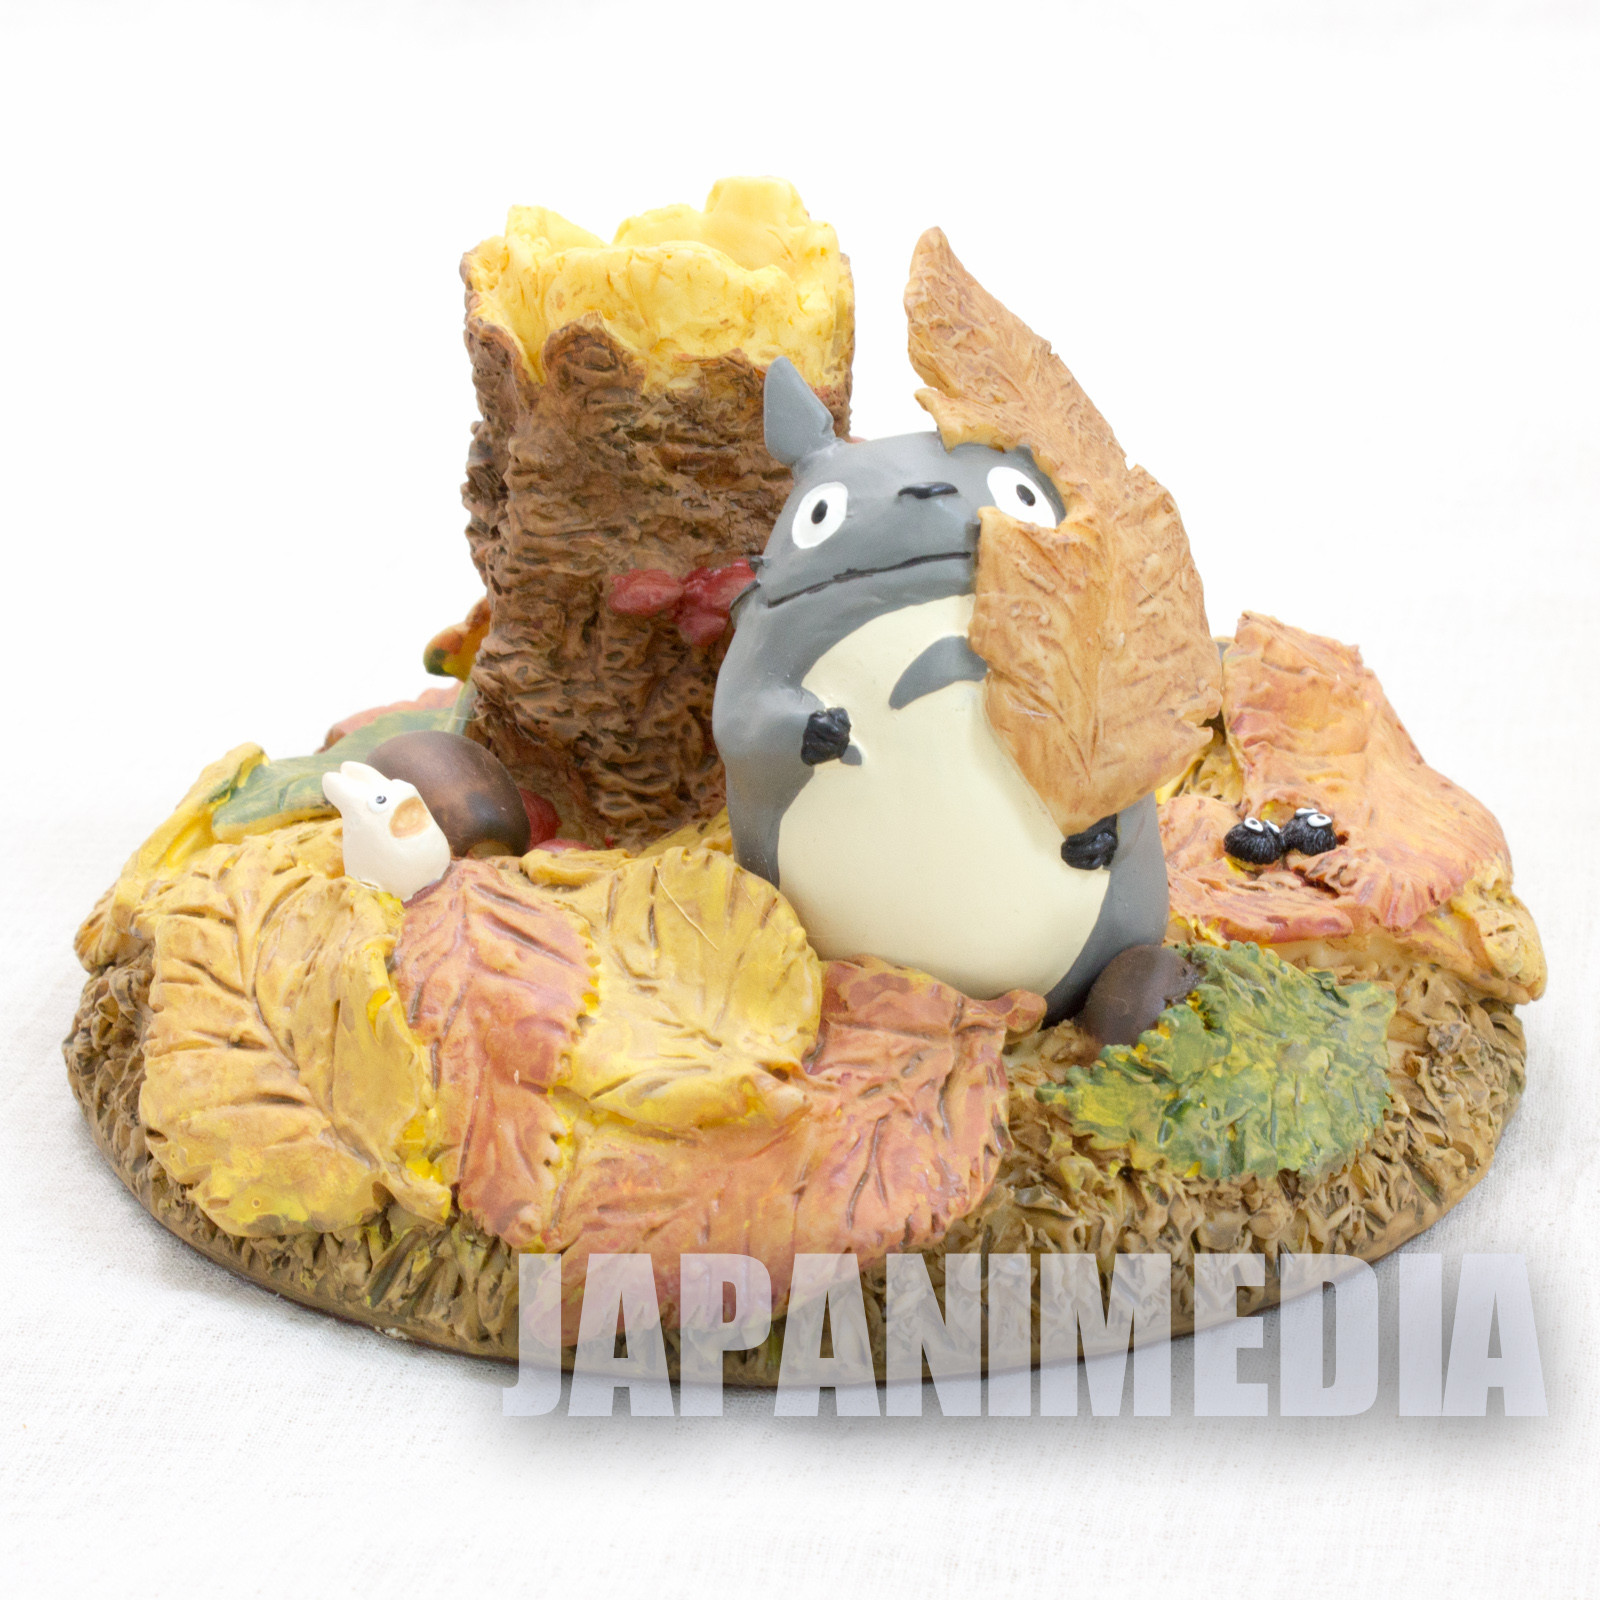 My Neighbor Totoro Diorama Figure Vase for one Flower Ghibli JAPAN ANIME 2